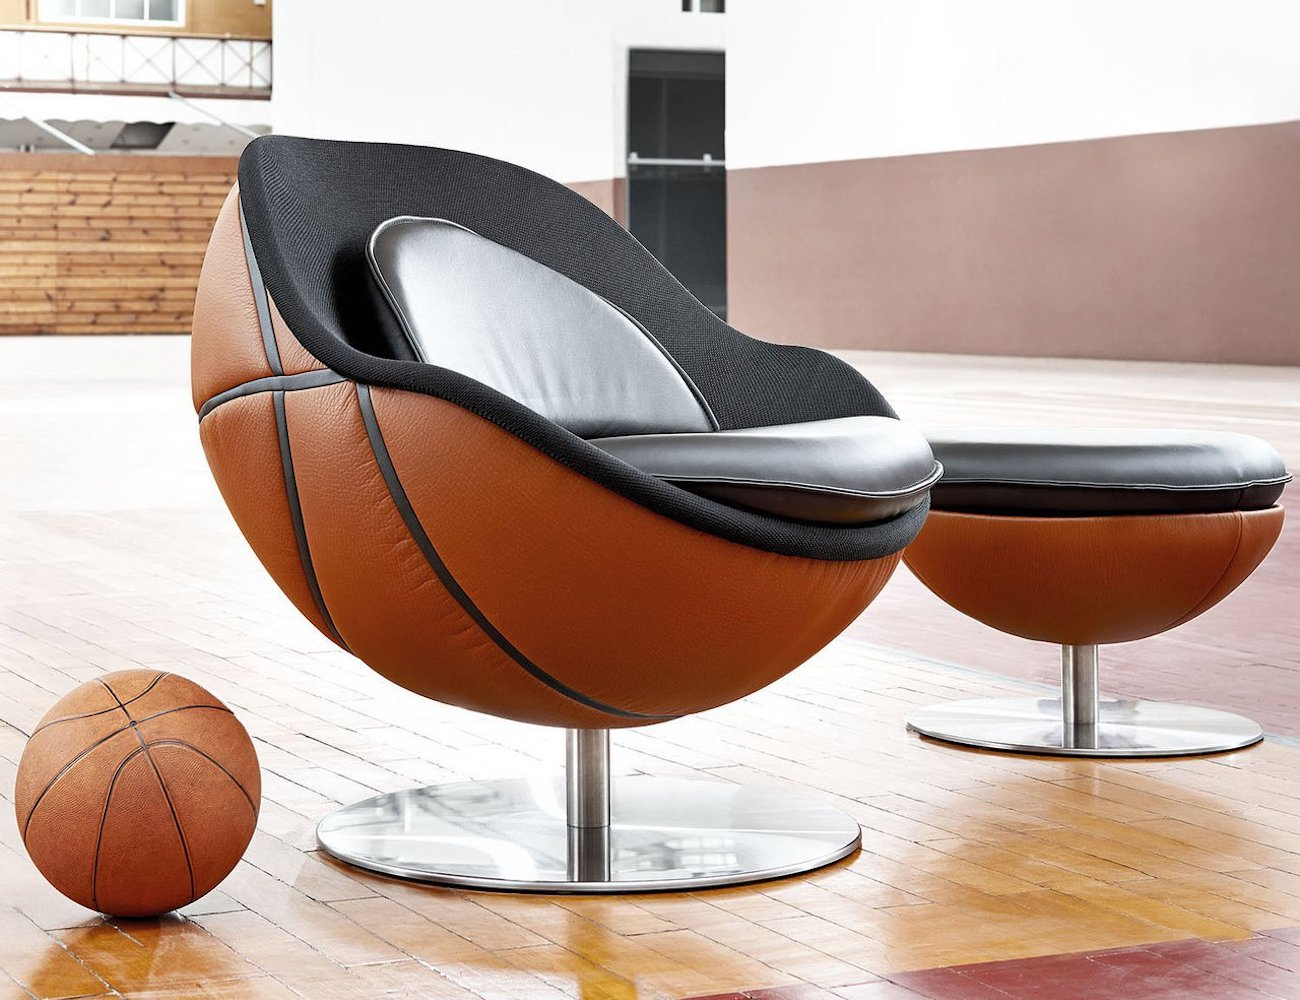 NBA+Basketball+Lounge+Chair